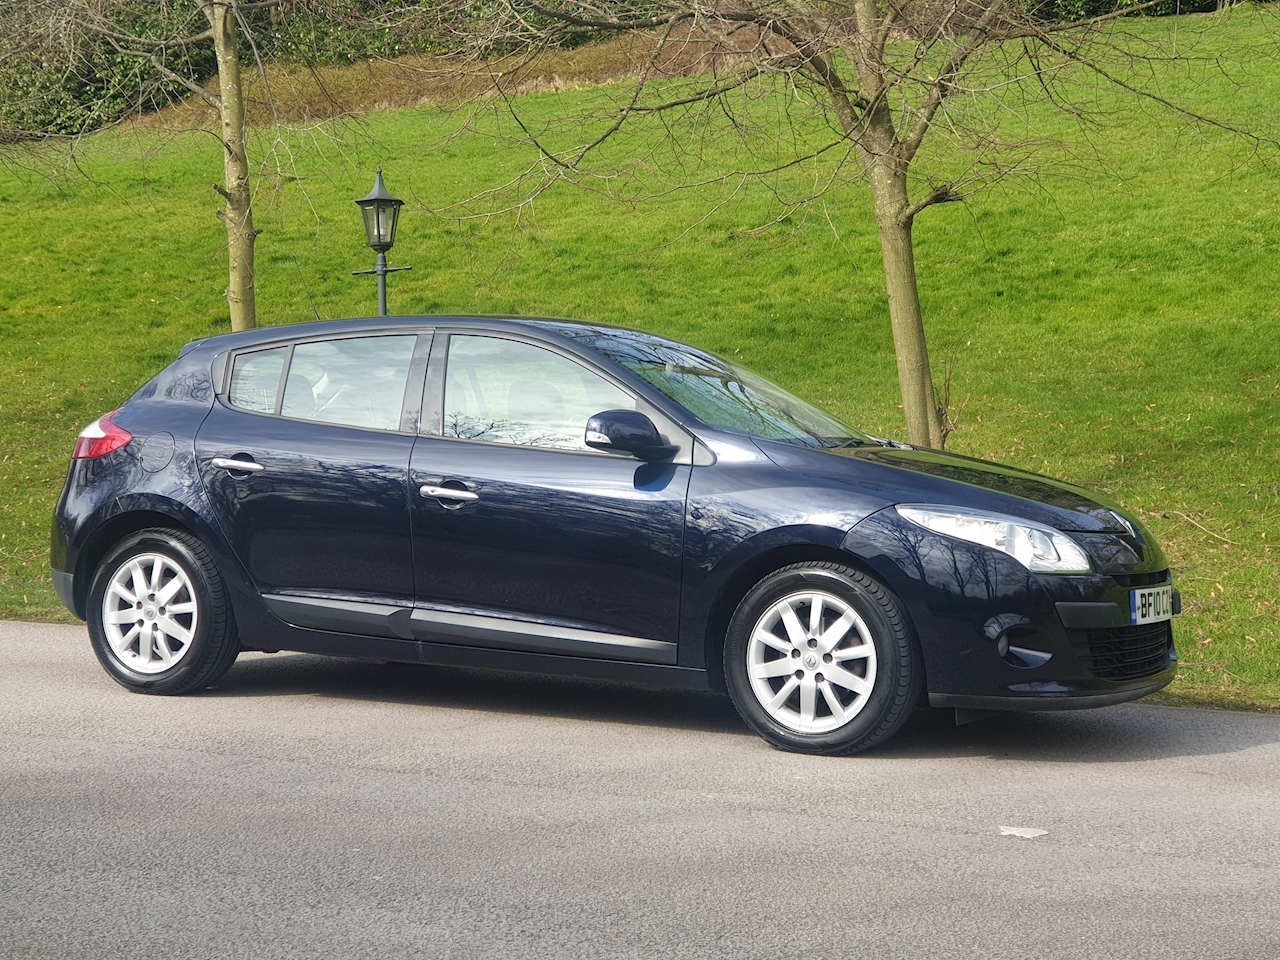 Megane Privilege Dci Hatchback 1.5 Manual Diesel